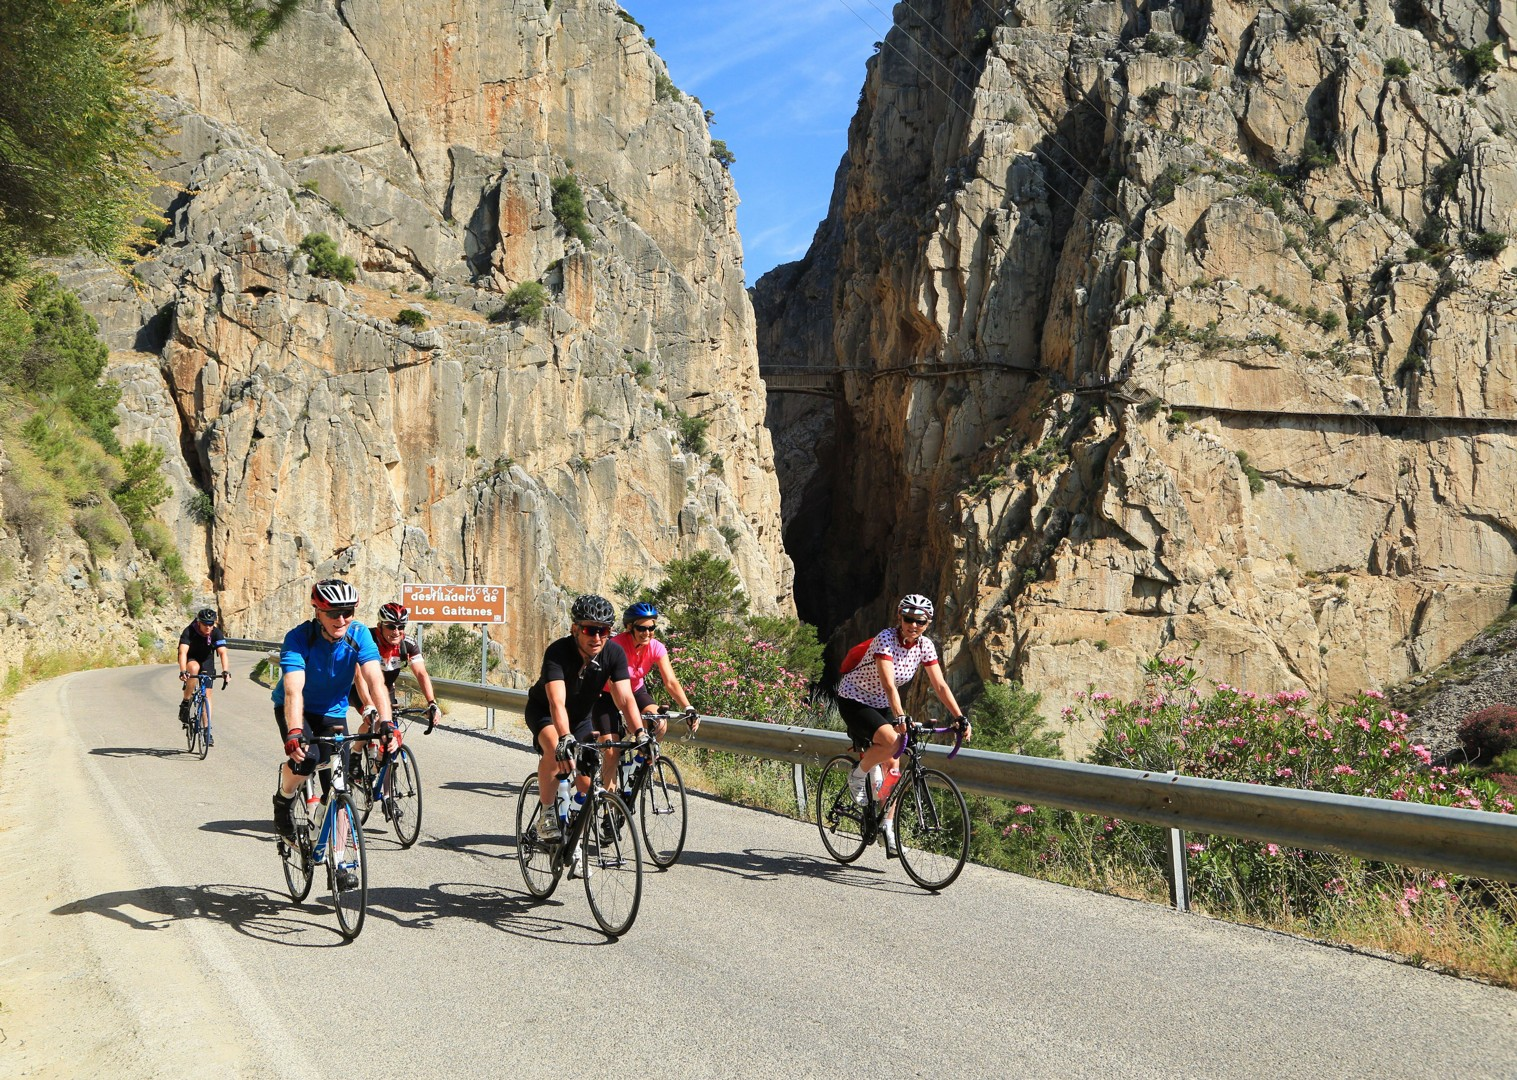 road-cycling-adventure-through-basque-country.jpg - Spain - Basque Country to Andalucia - North to South - 21 Day - Guided Road Cycling Holiday - Road Cycling